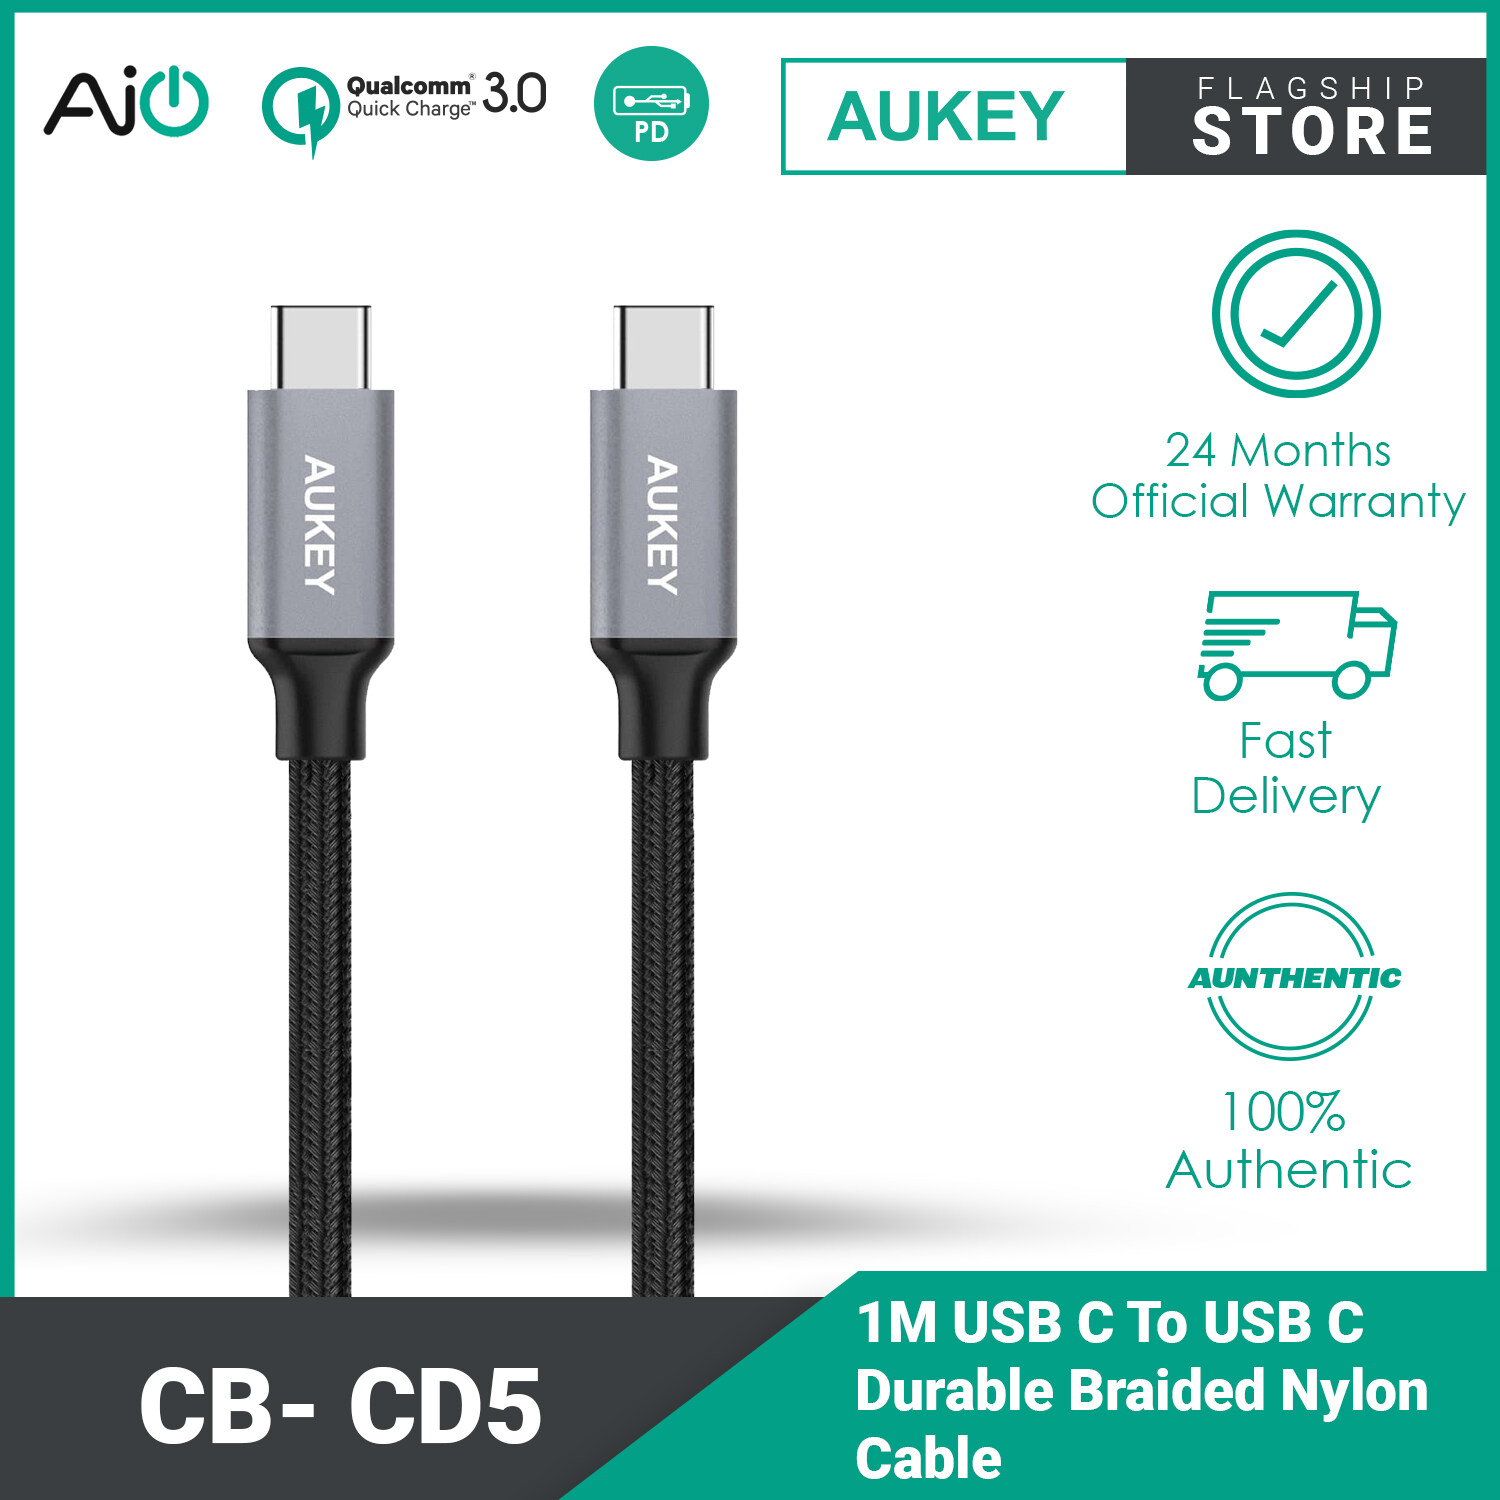 AUKEY CB-CD5 USB C To USB C Durable Braided Nylon Type C Cable - 1 meter